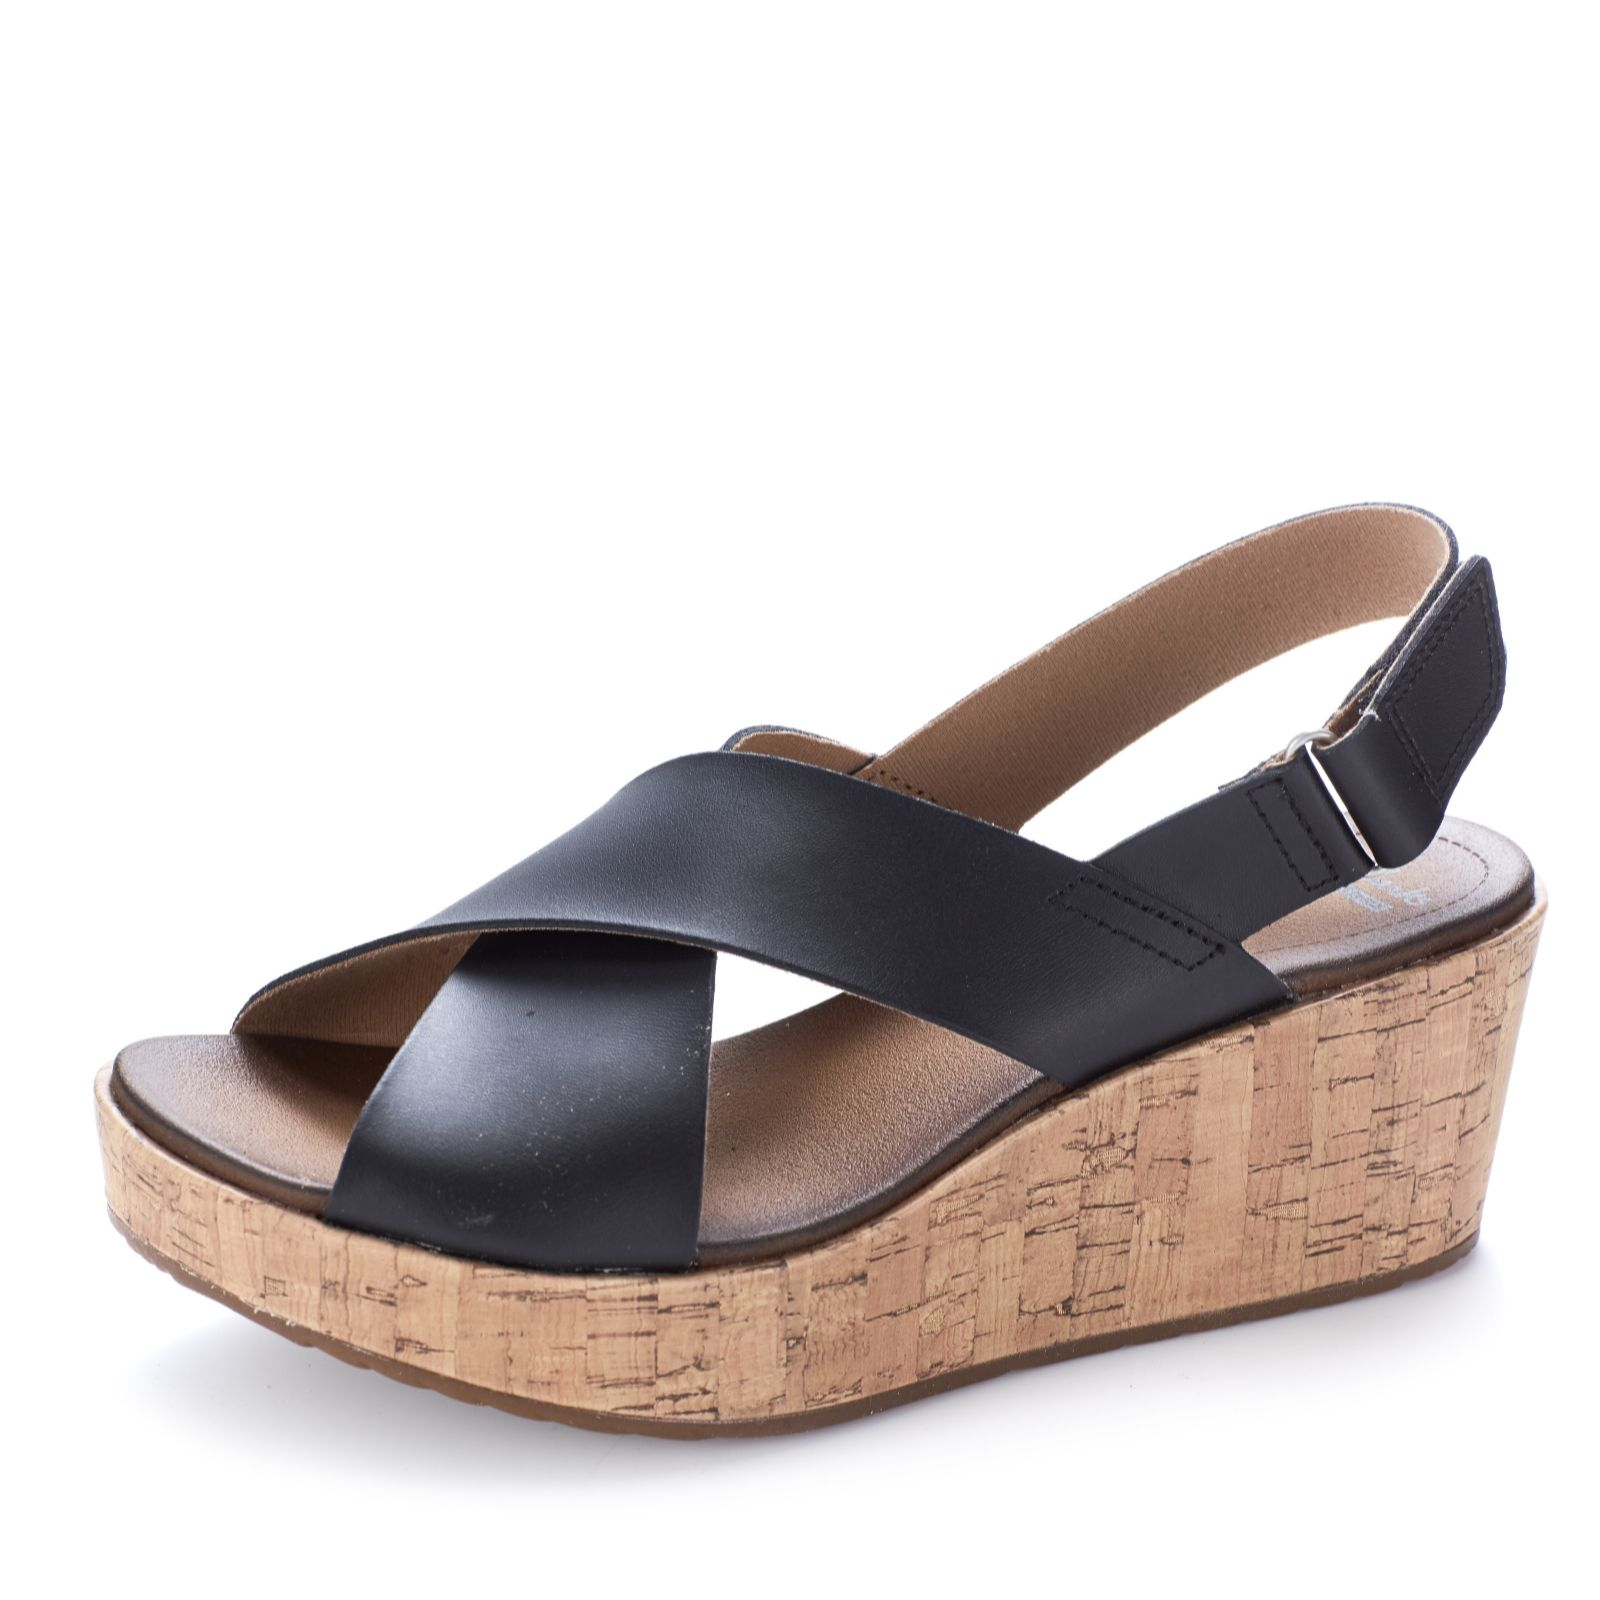 Wide fit sandals shoes uk - Clarks Stasha Hale Leather Wedge Shoe With Loop Fastening Wide Fit Page 1 Qvc Uk